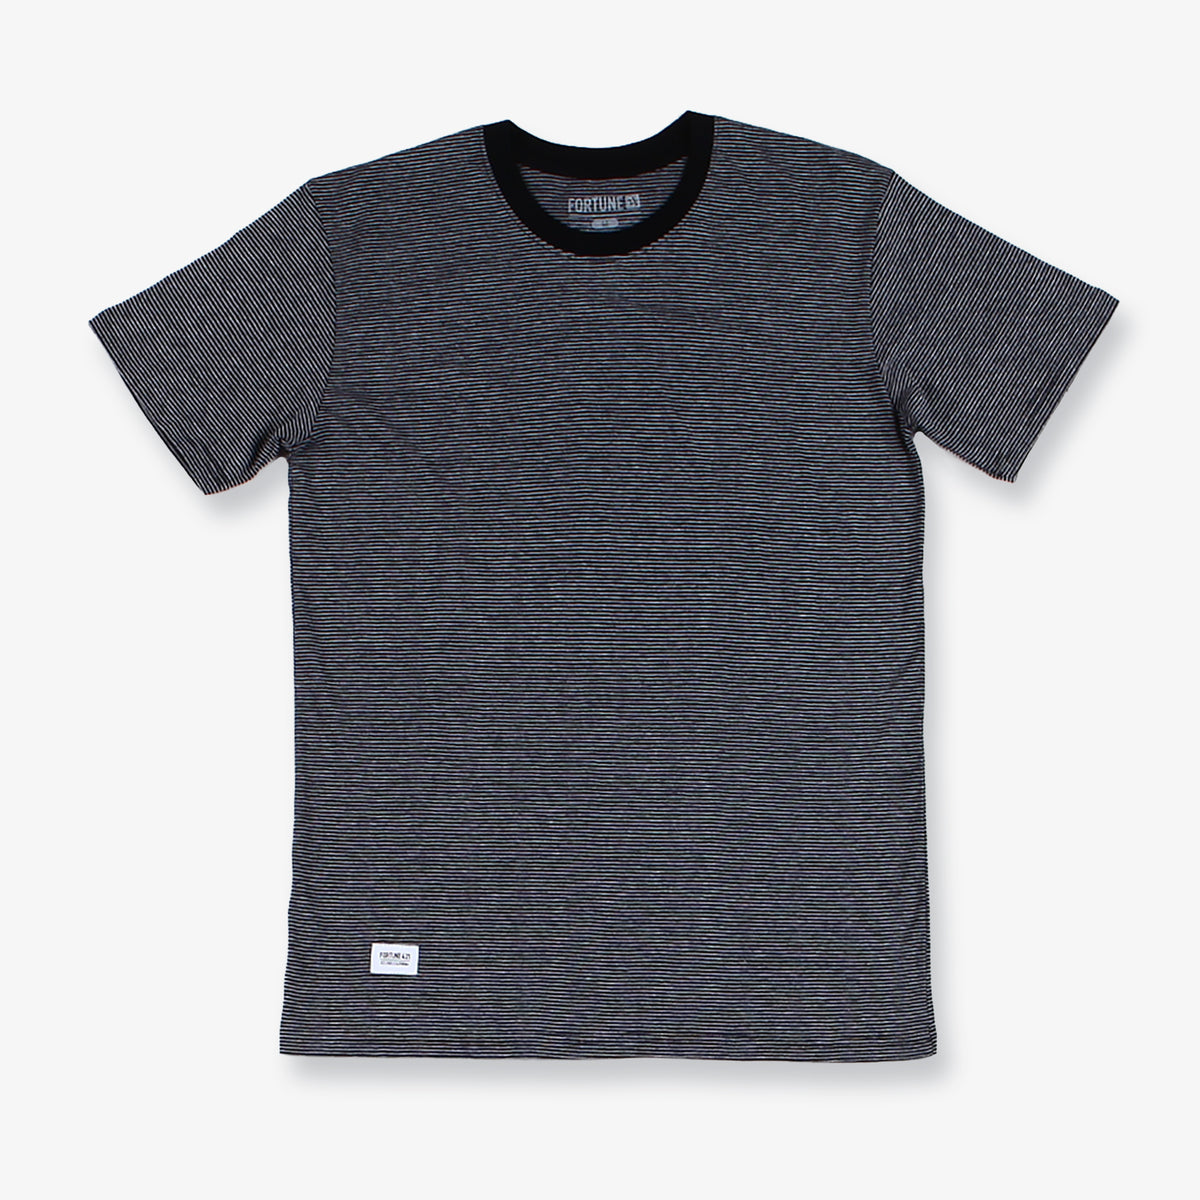 Mission Striped Tee - Black & Grey